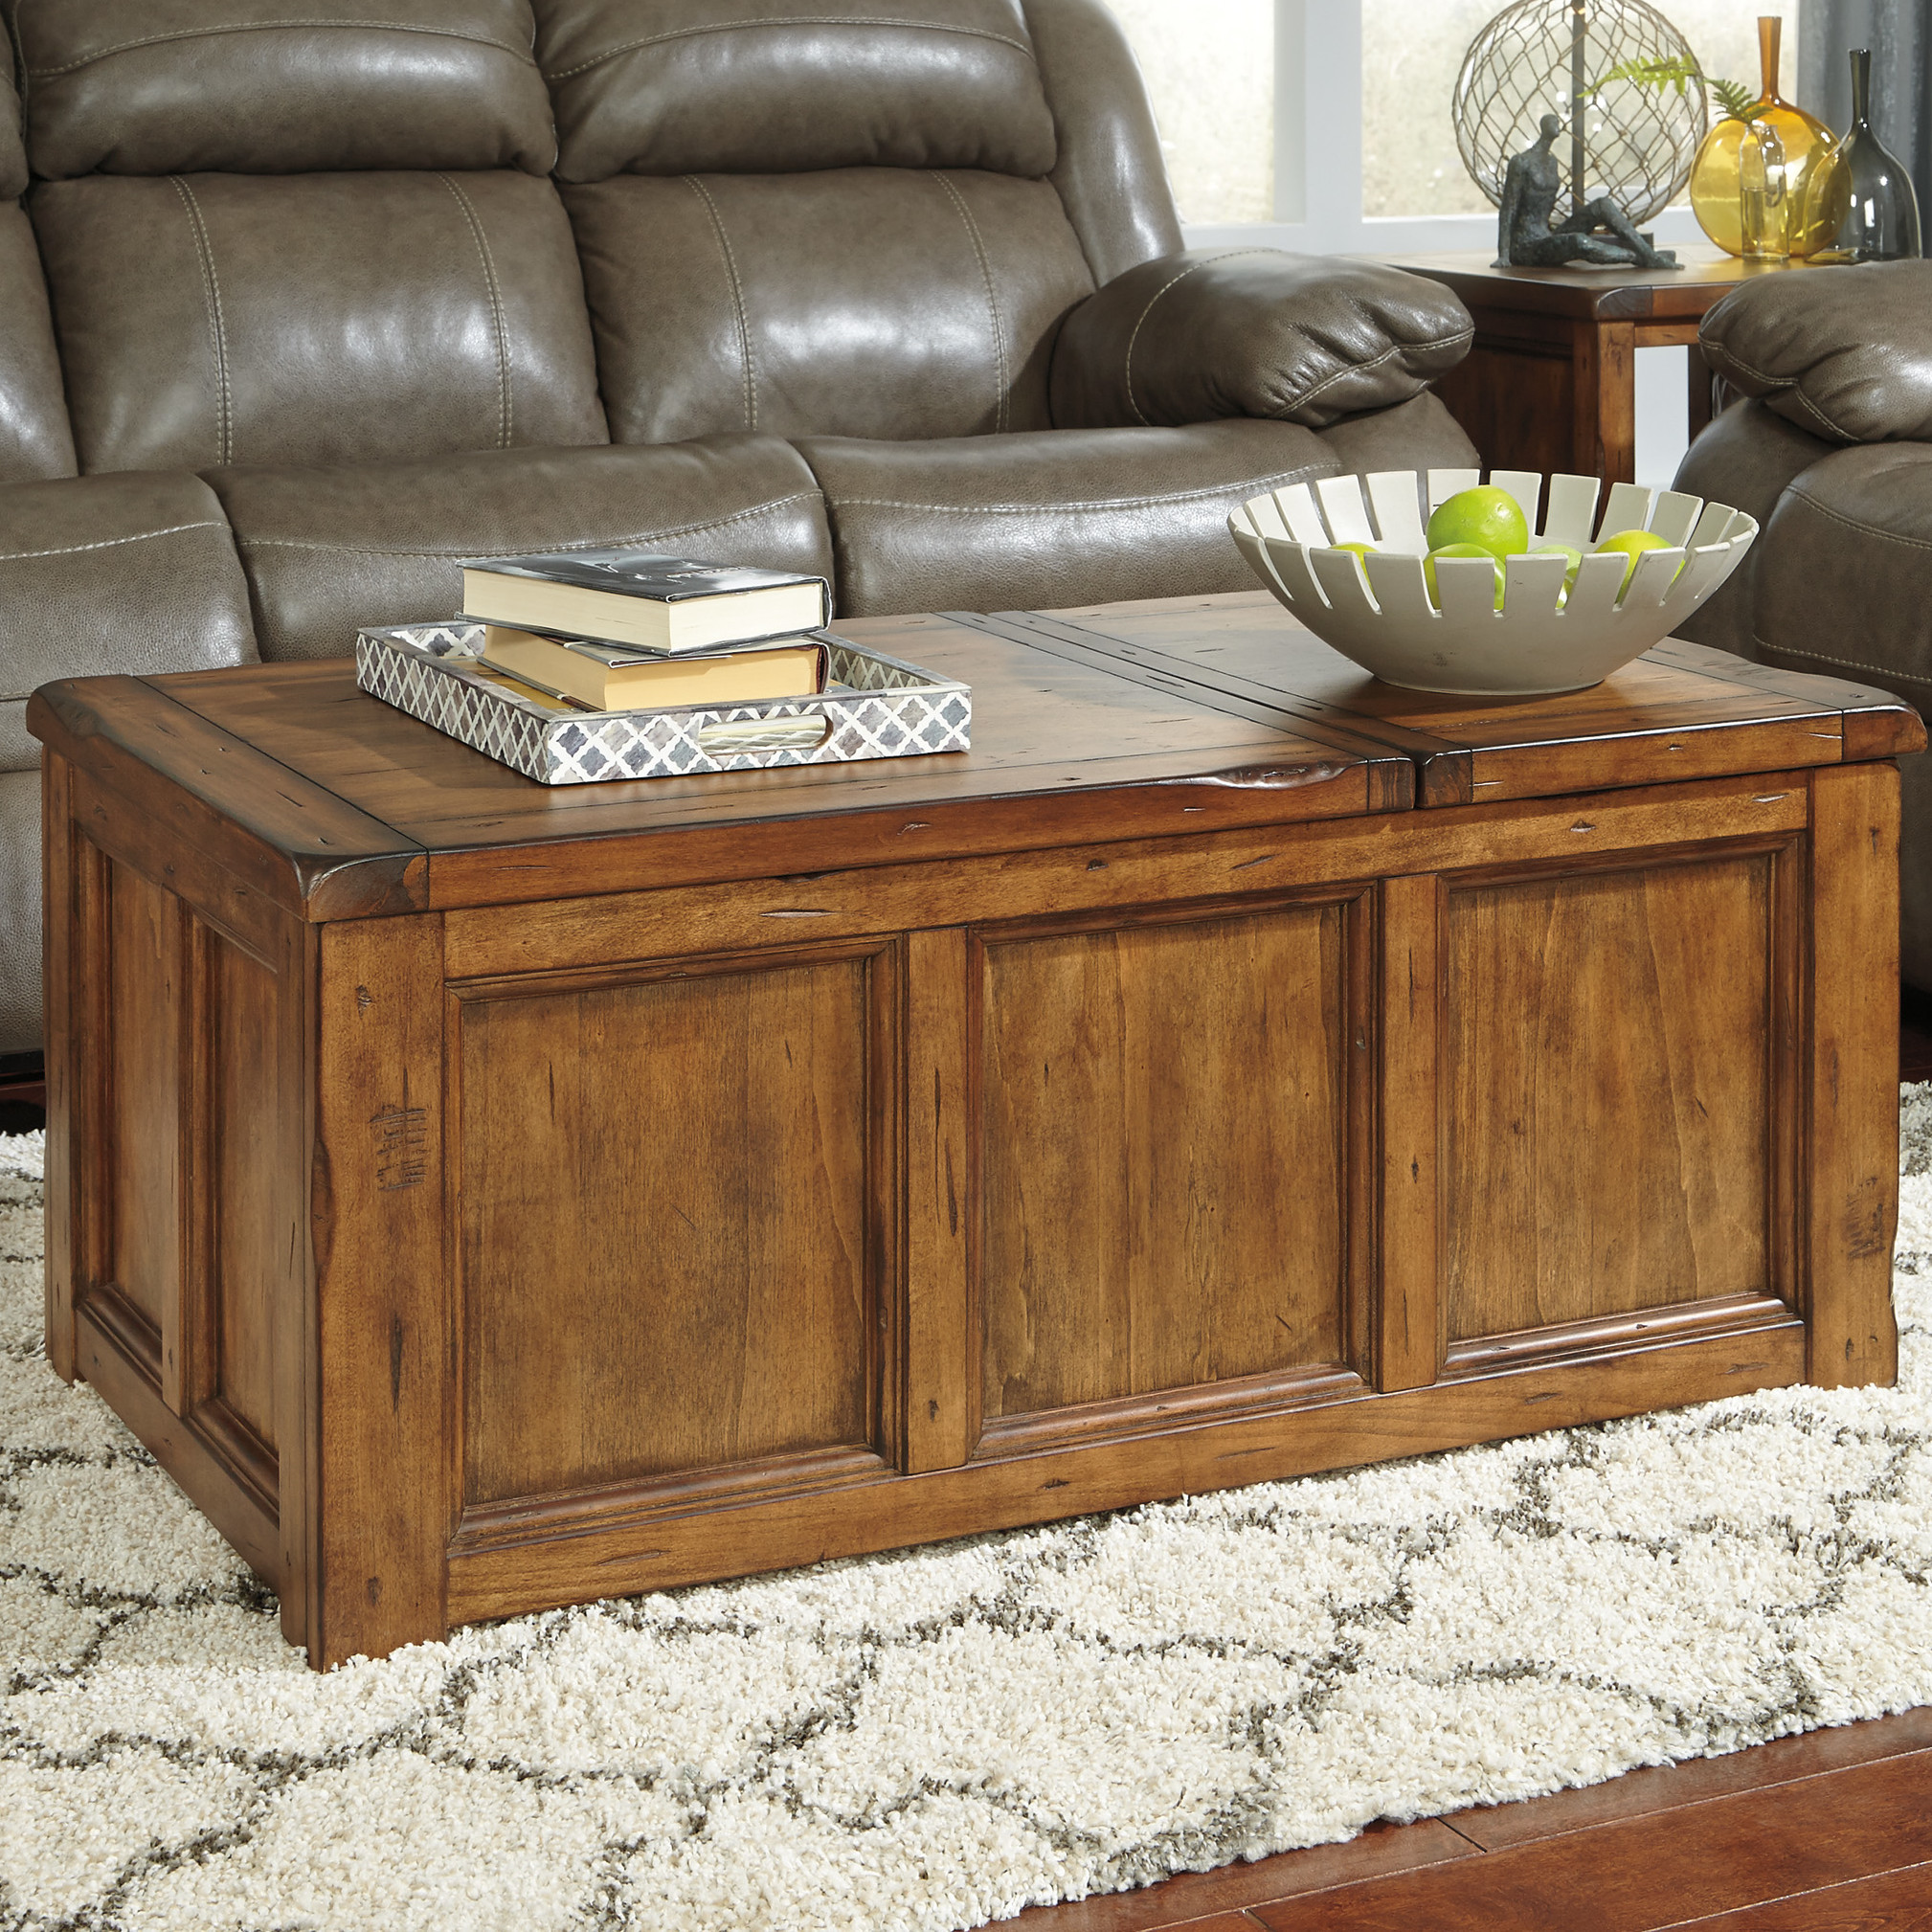 homes prodigy tempo ct tacoma furniture inc stores property